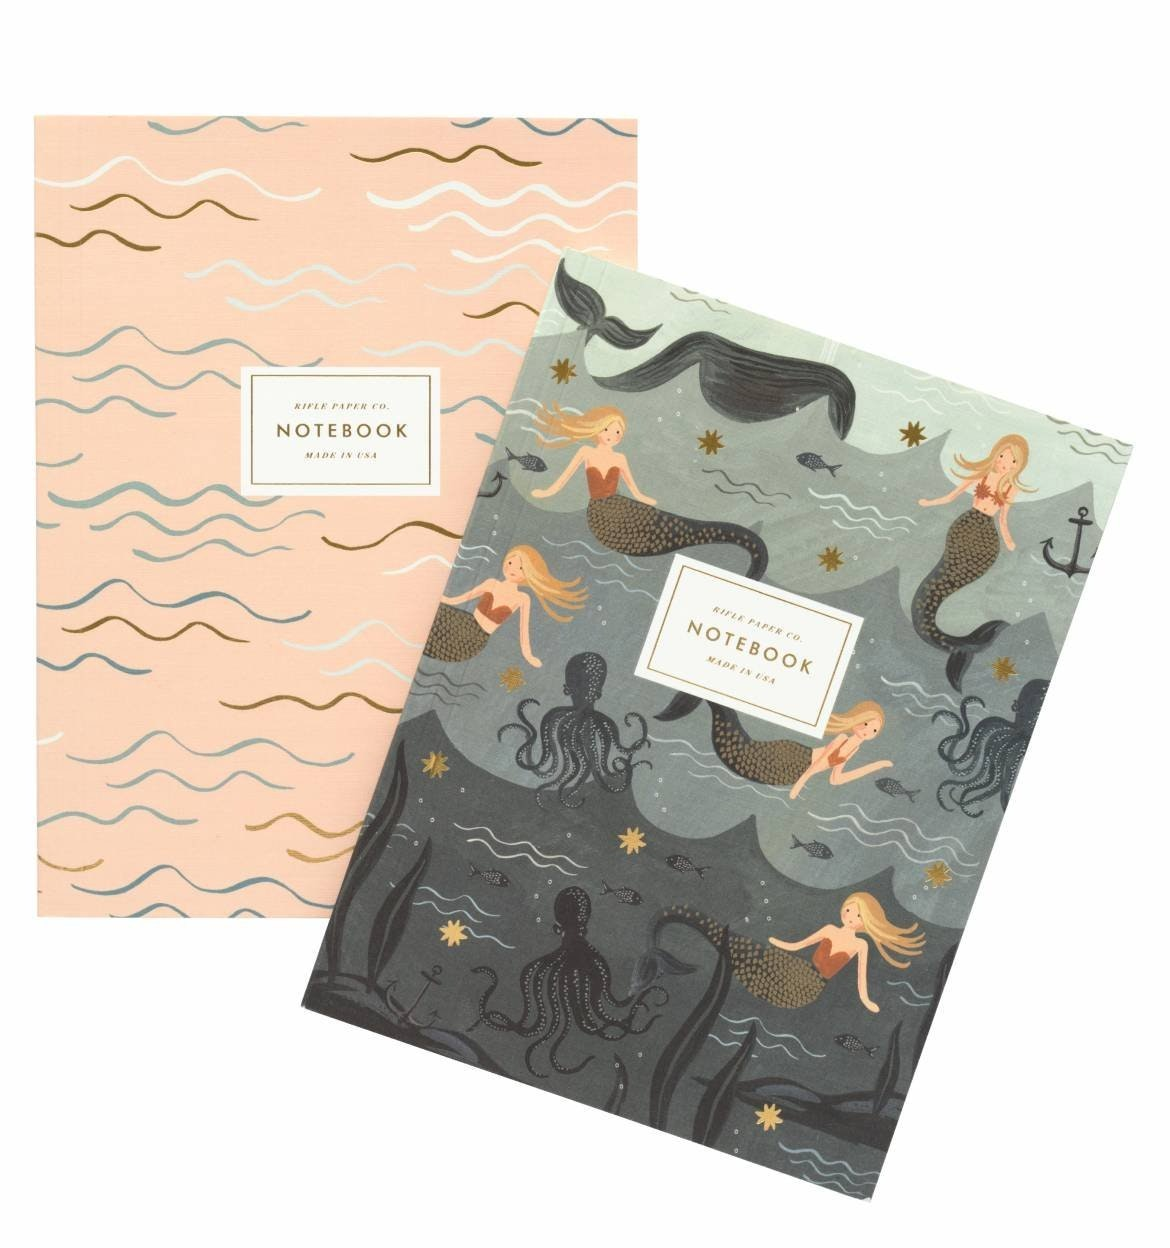 These artsy notebooks for mermaids-in-training